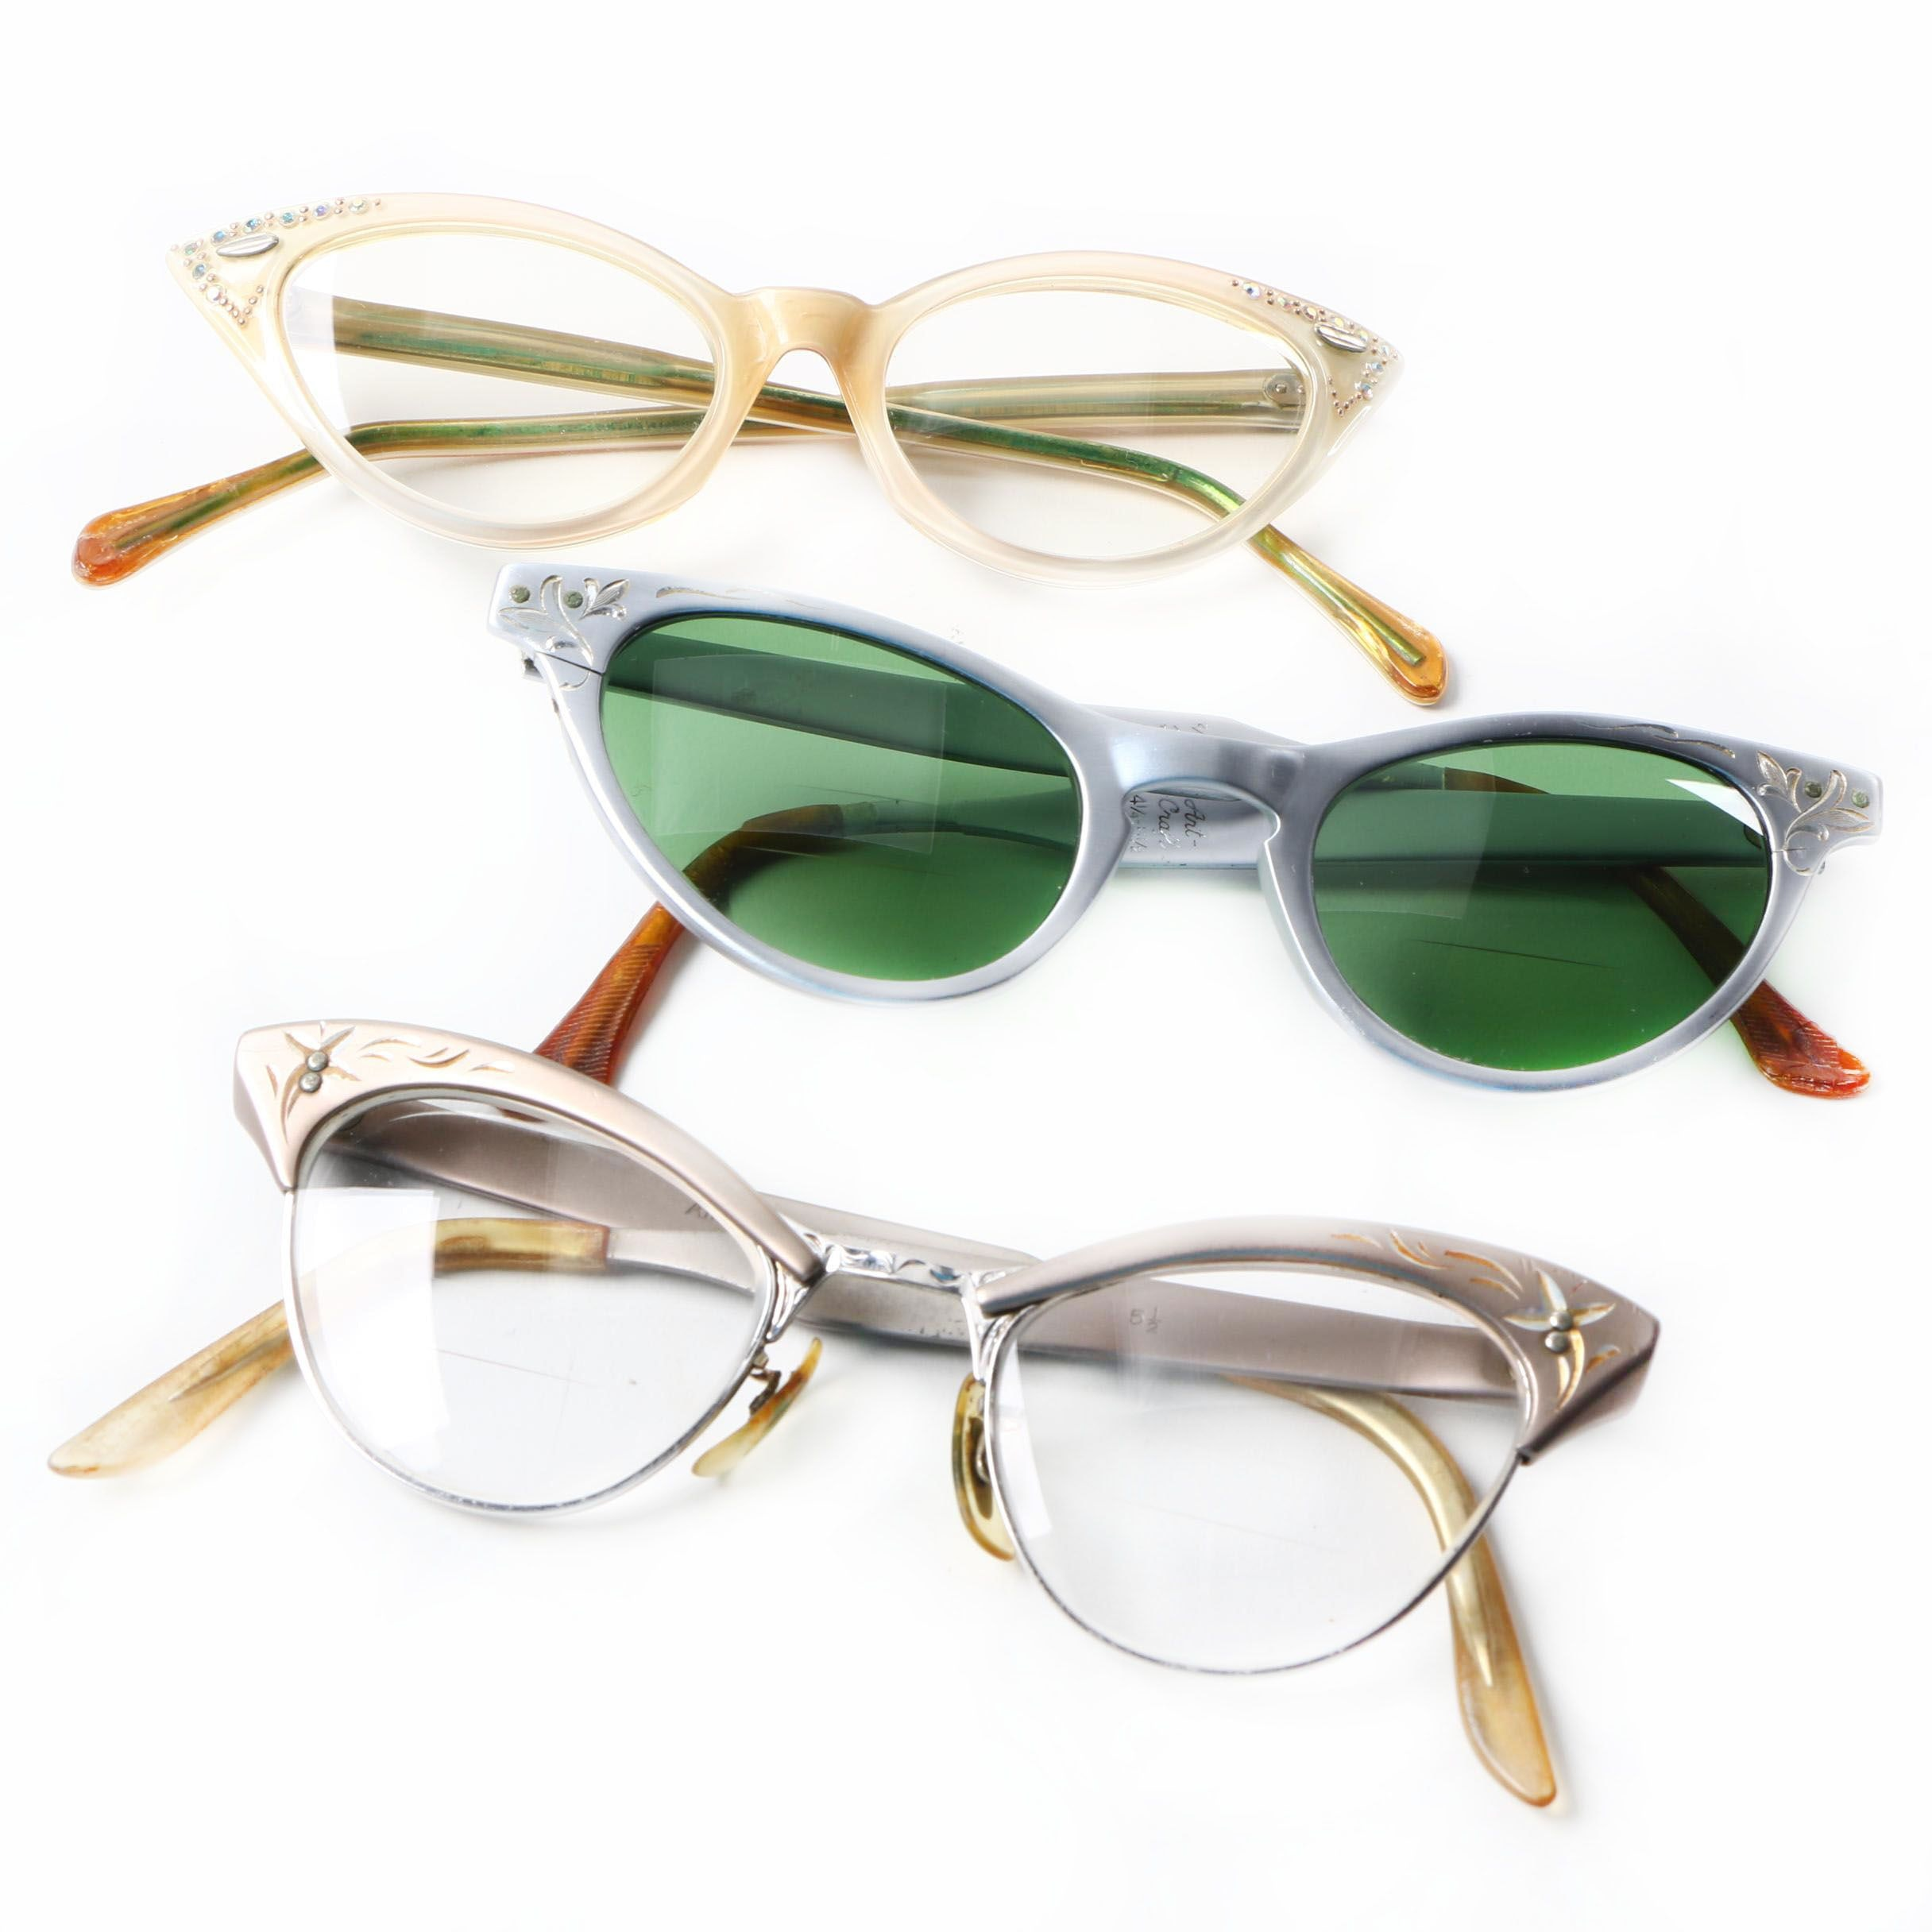 Vintage Cat-Eye Glasses Including Art-Craft and American Optical